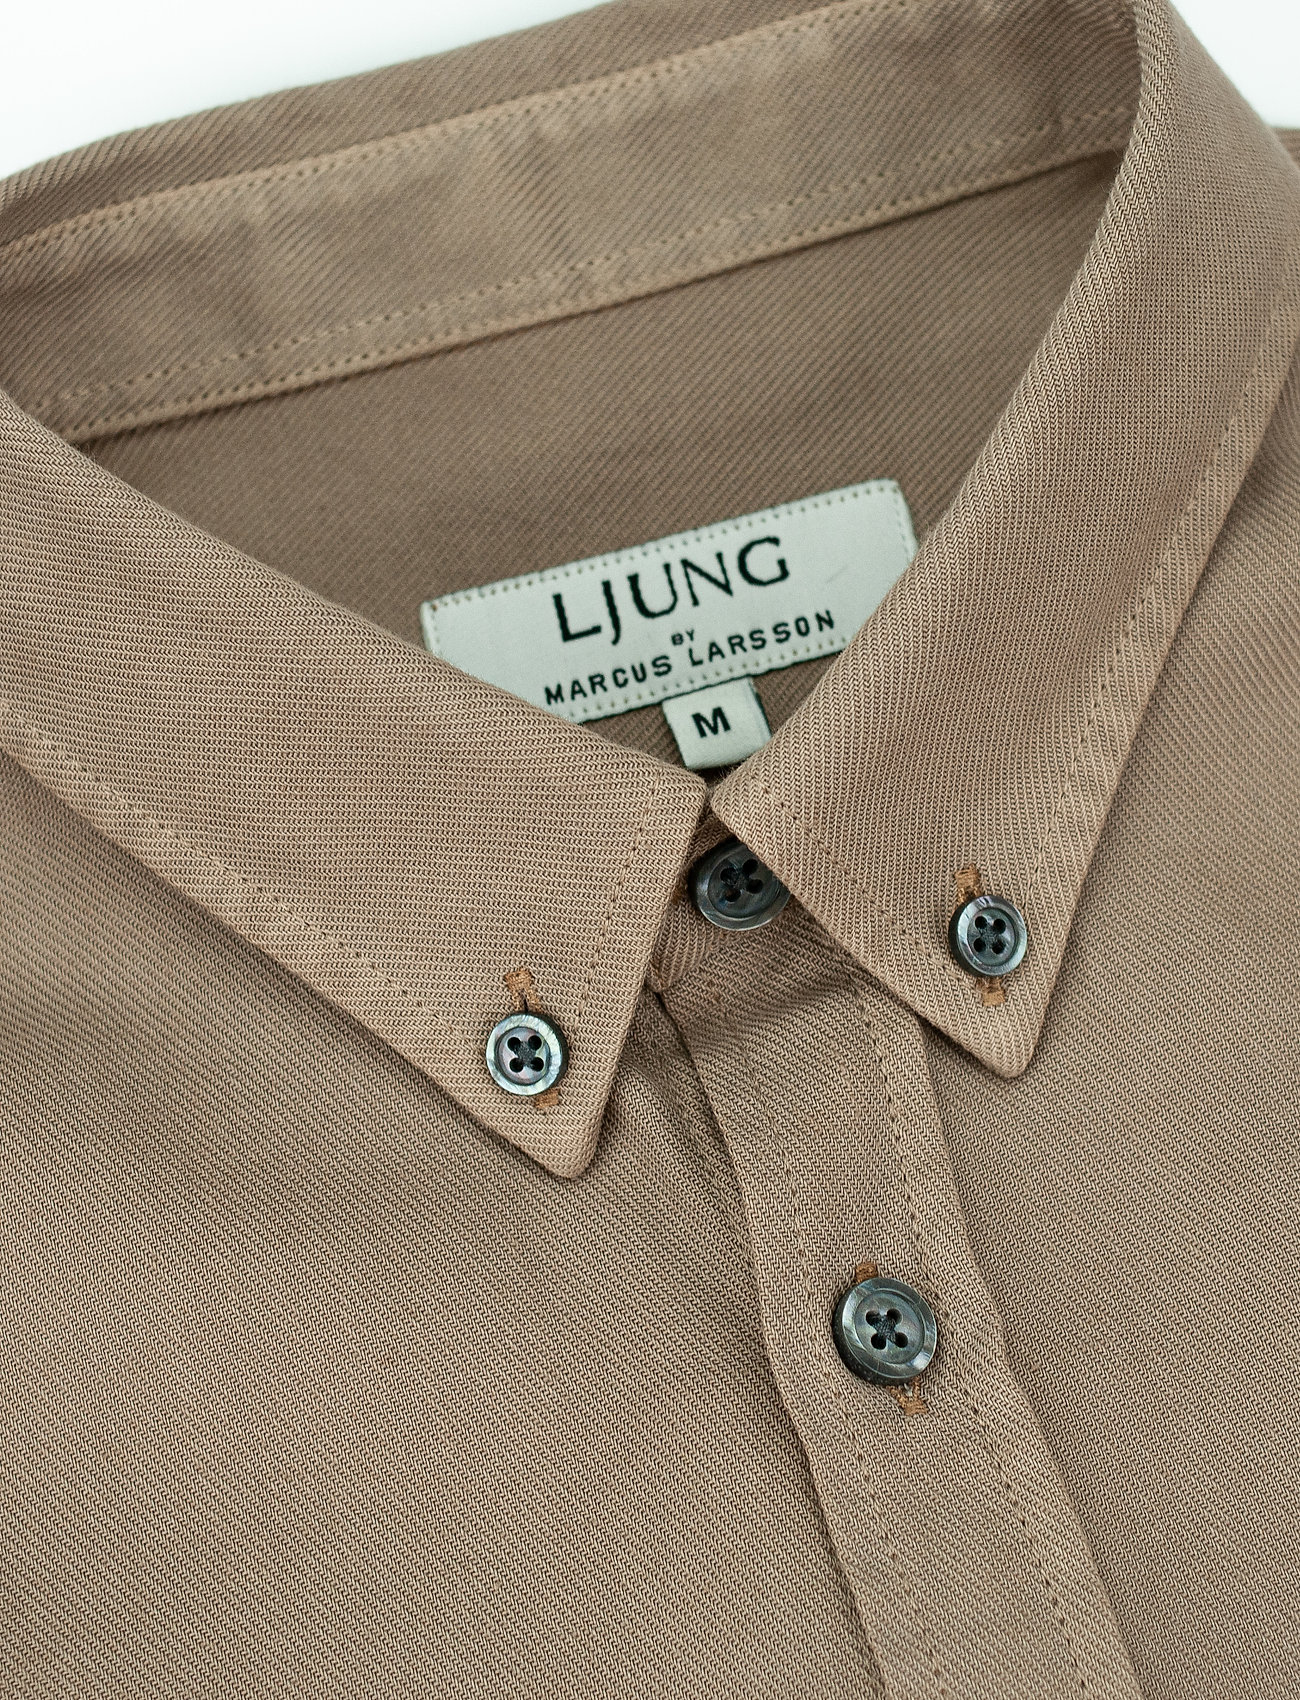 LJUNG by Marcus Larsson - Washed Twill Shirt - chemises à carreaux - sand - 5